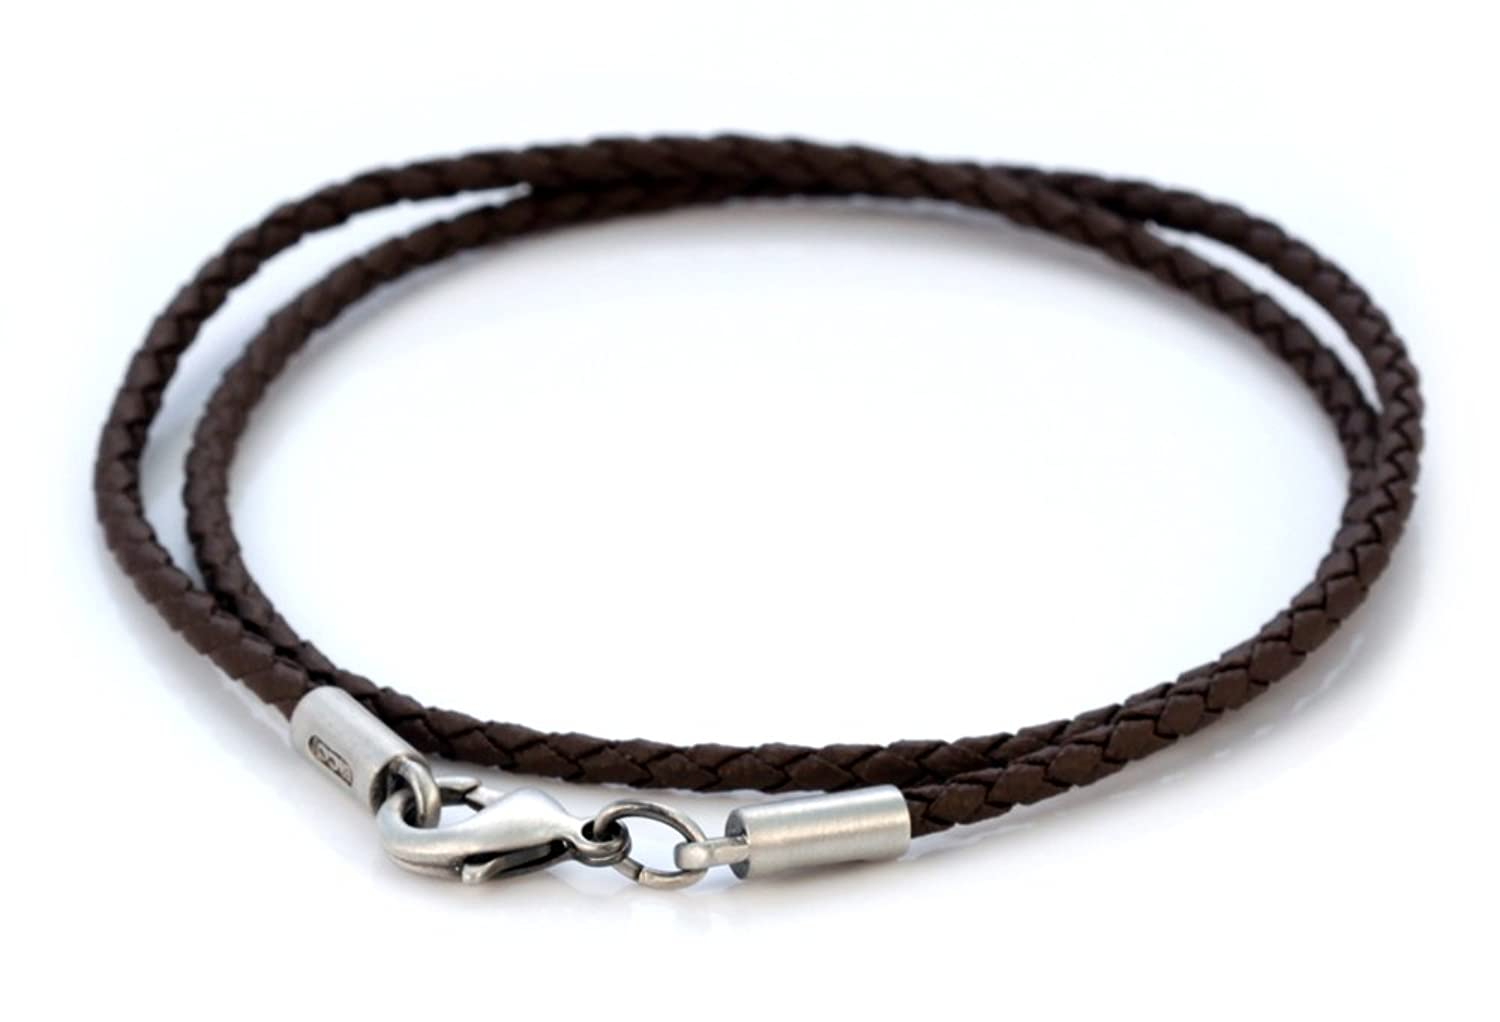 Bico 2mm (0.08 inch) Brown Braided Necklace (CL12 Brown)